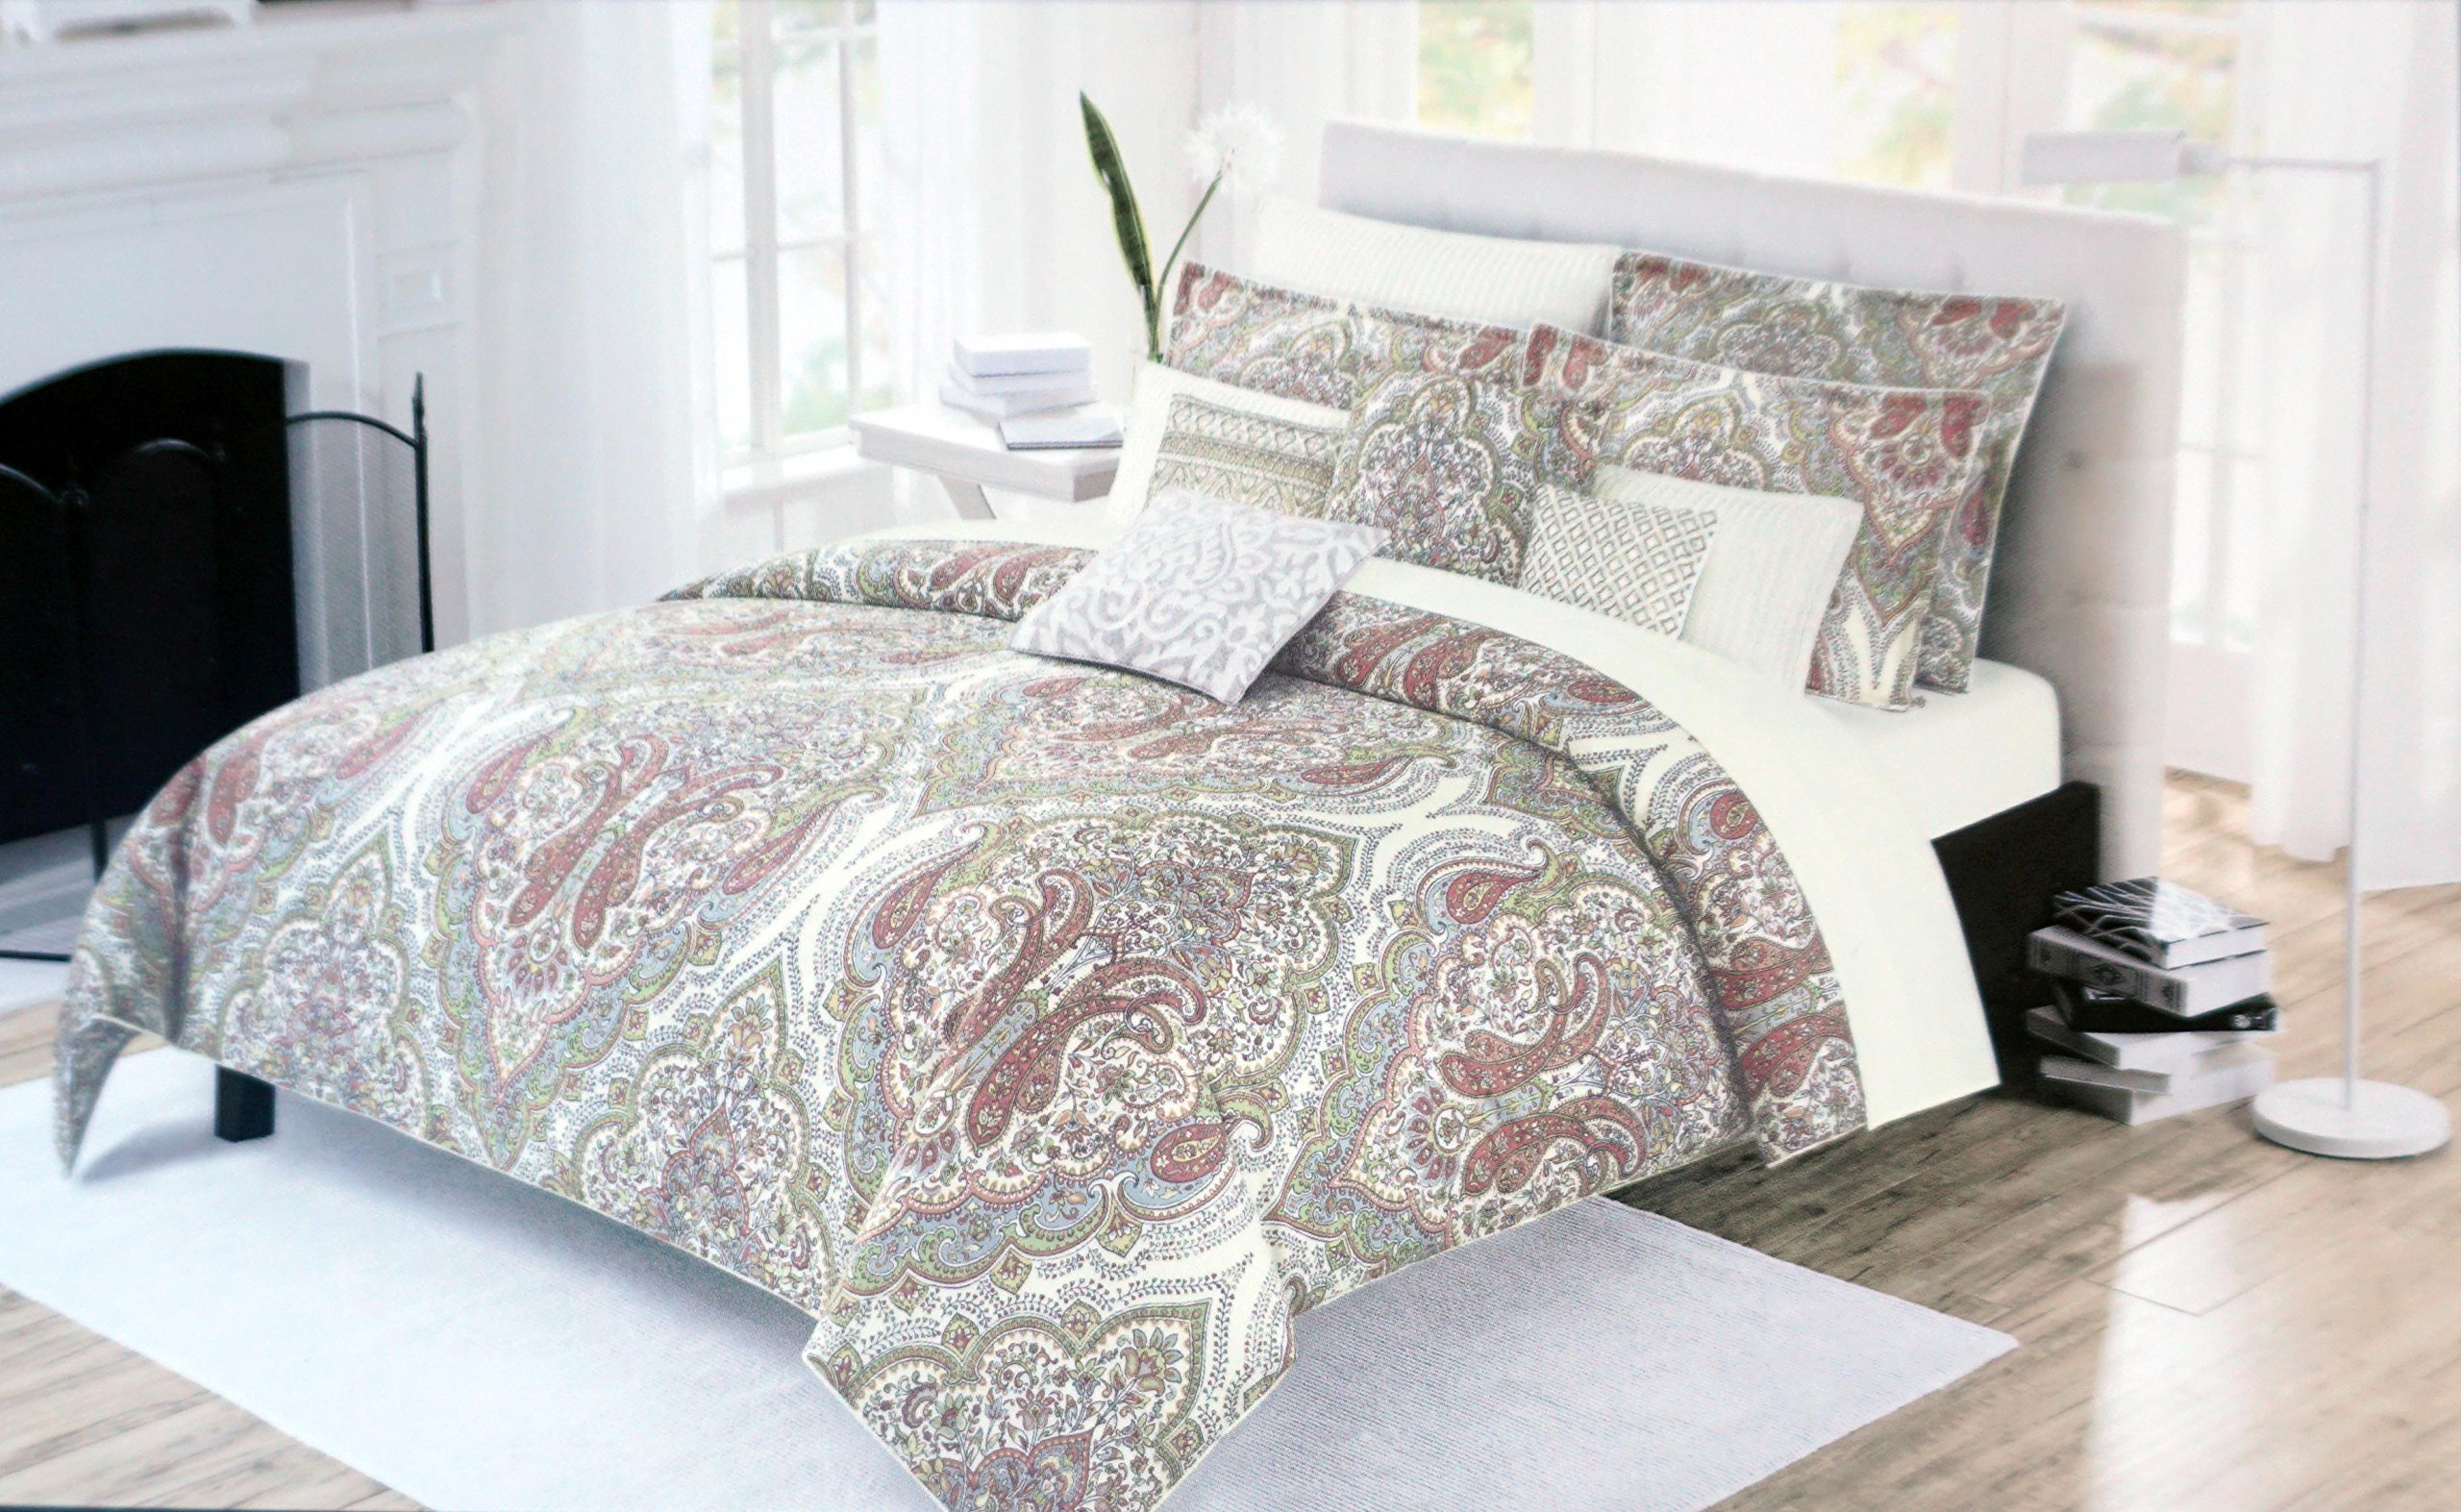 for like outdoor of sets cover your urban snooze alluring medallion set similar outfitters boho covers xl grey floral to duvet bedding twin